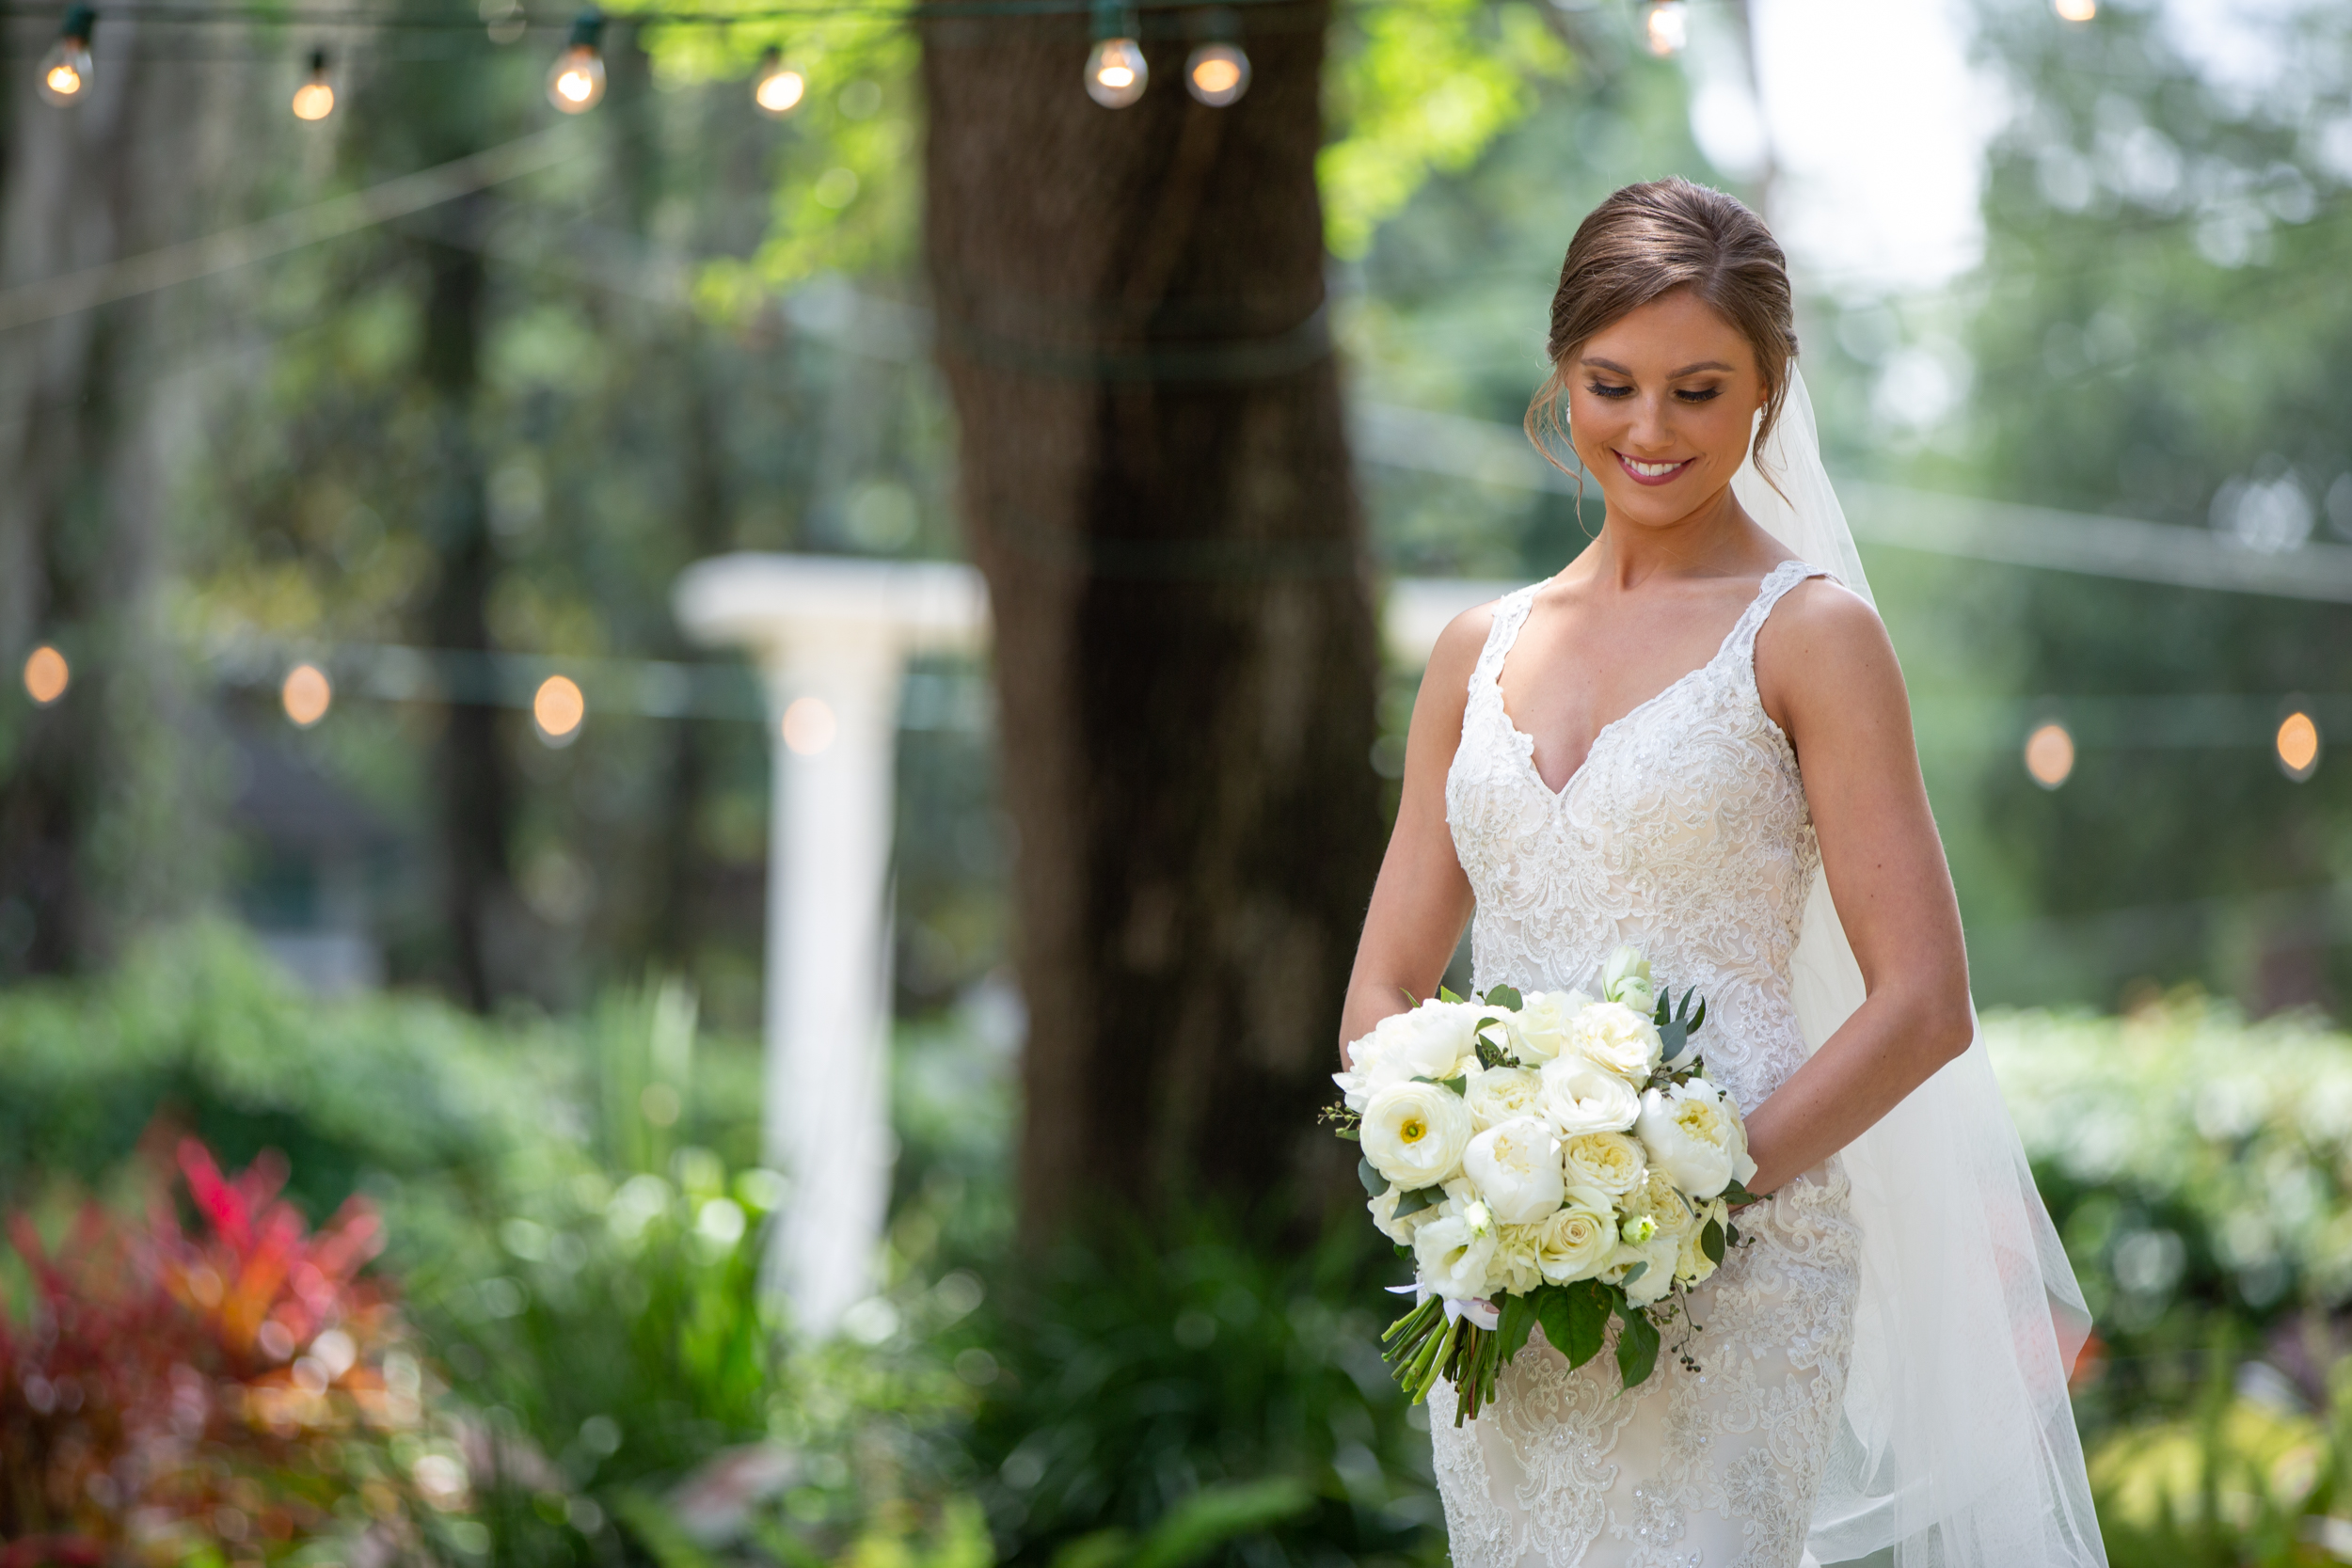 a bride in white smiling as she looks down at her bouquet on a sunny day